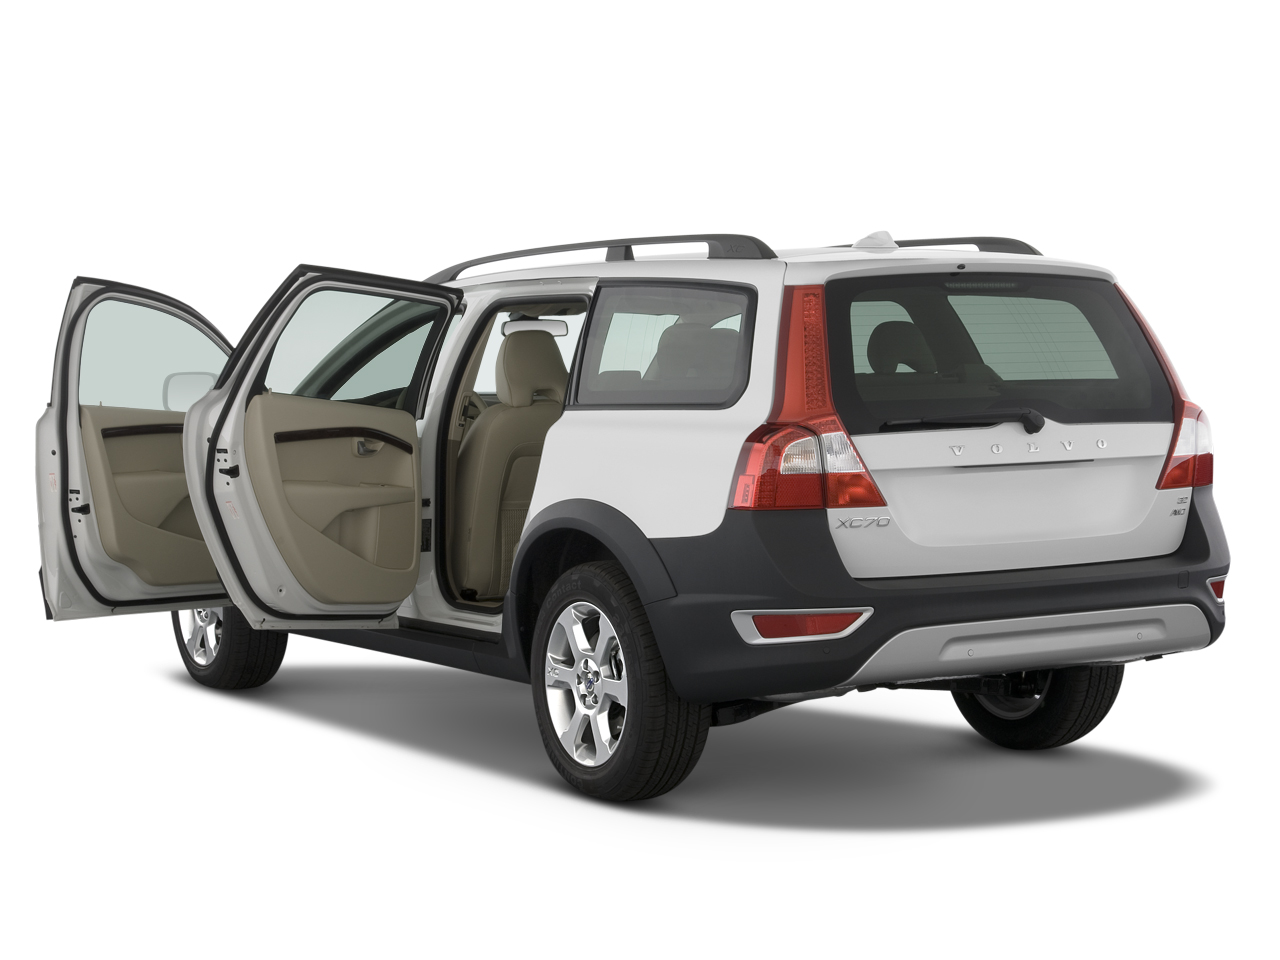 preview 2008 volvo v70 xc70 latest news features and reviews automobile magazine. Black Bedroom Furniture Sets. Home Design Ideas